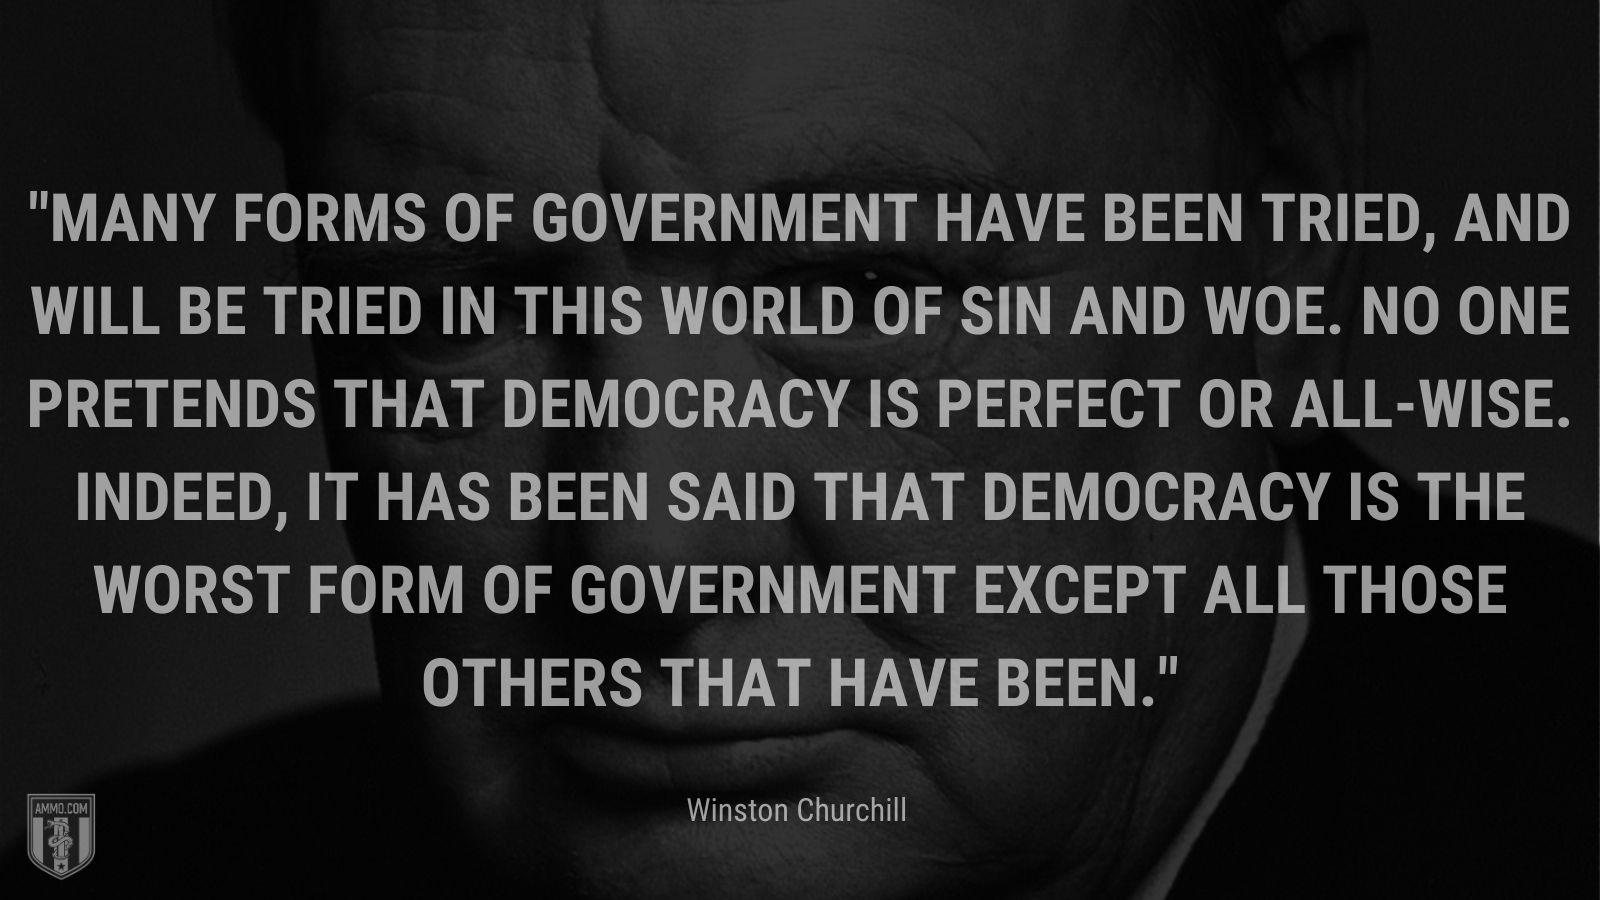 Many forms of government have been tried, and will be tried in this world of sin and woe. No one pretends that democracy is perfect or all-wise. Indeed, it has been said that democracy is the worst form of government except all those others that have been.